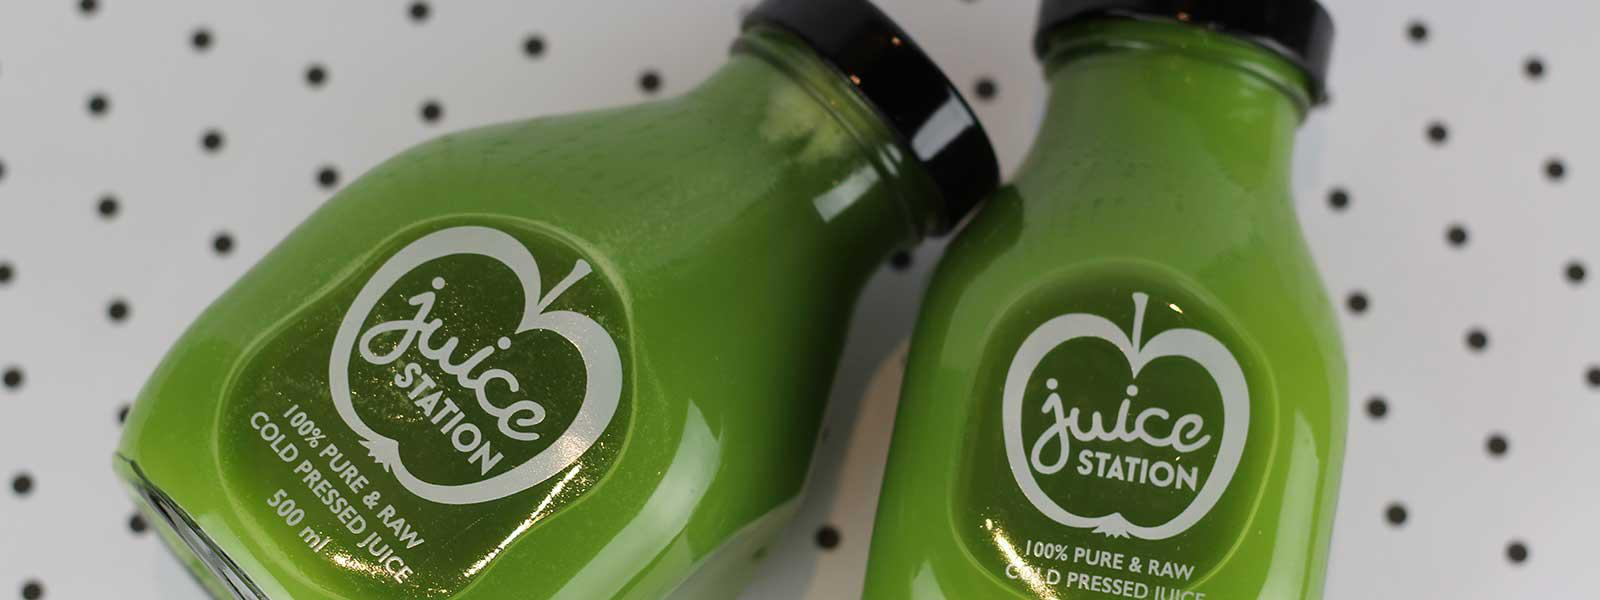 Green Detox Raw Juice by Juice Station